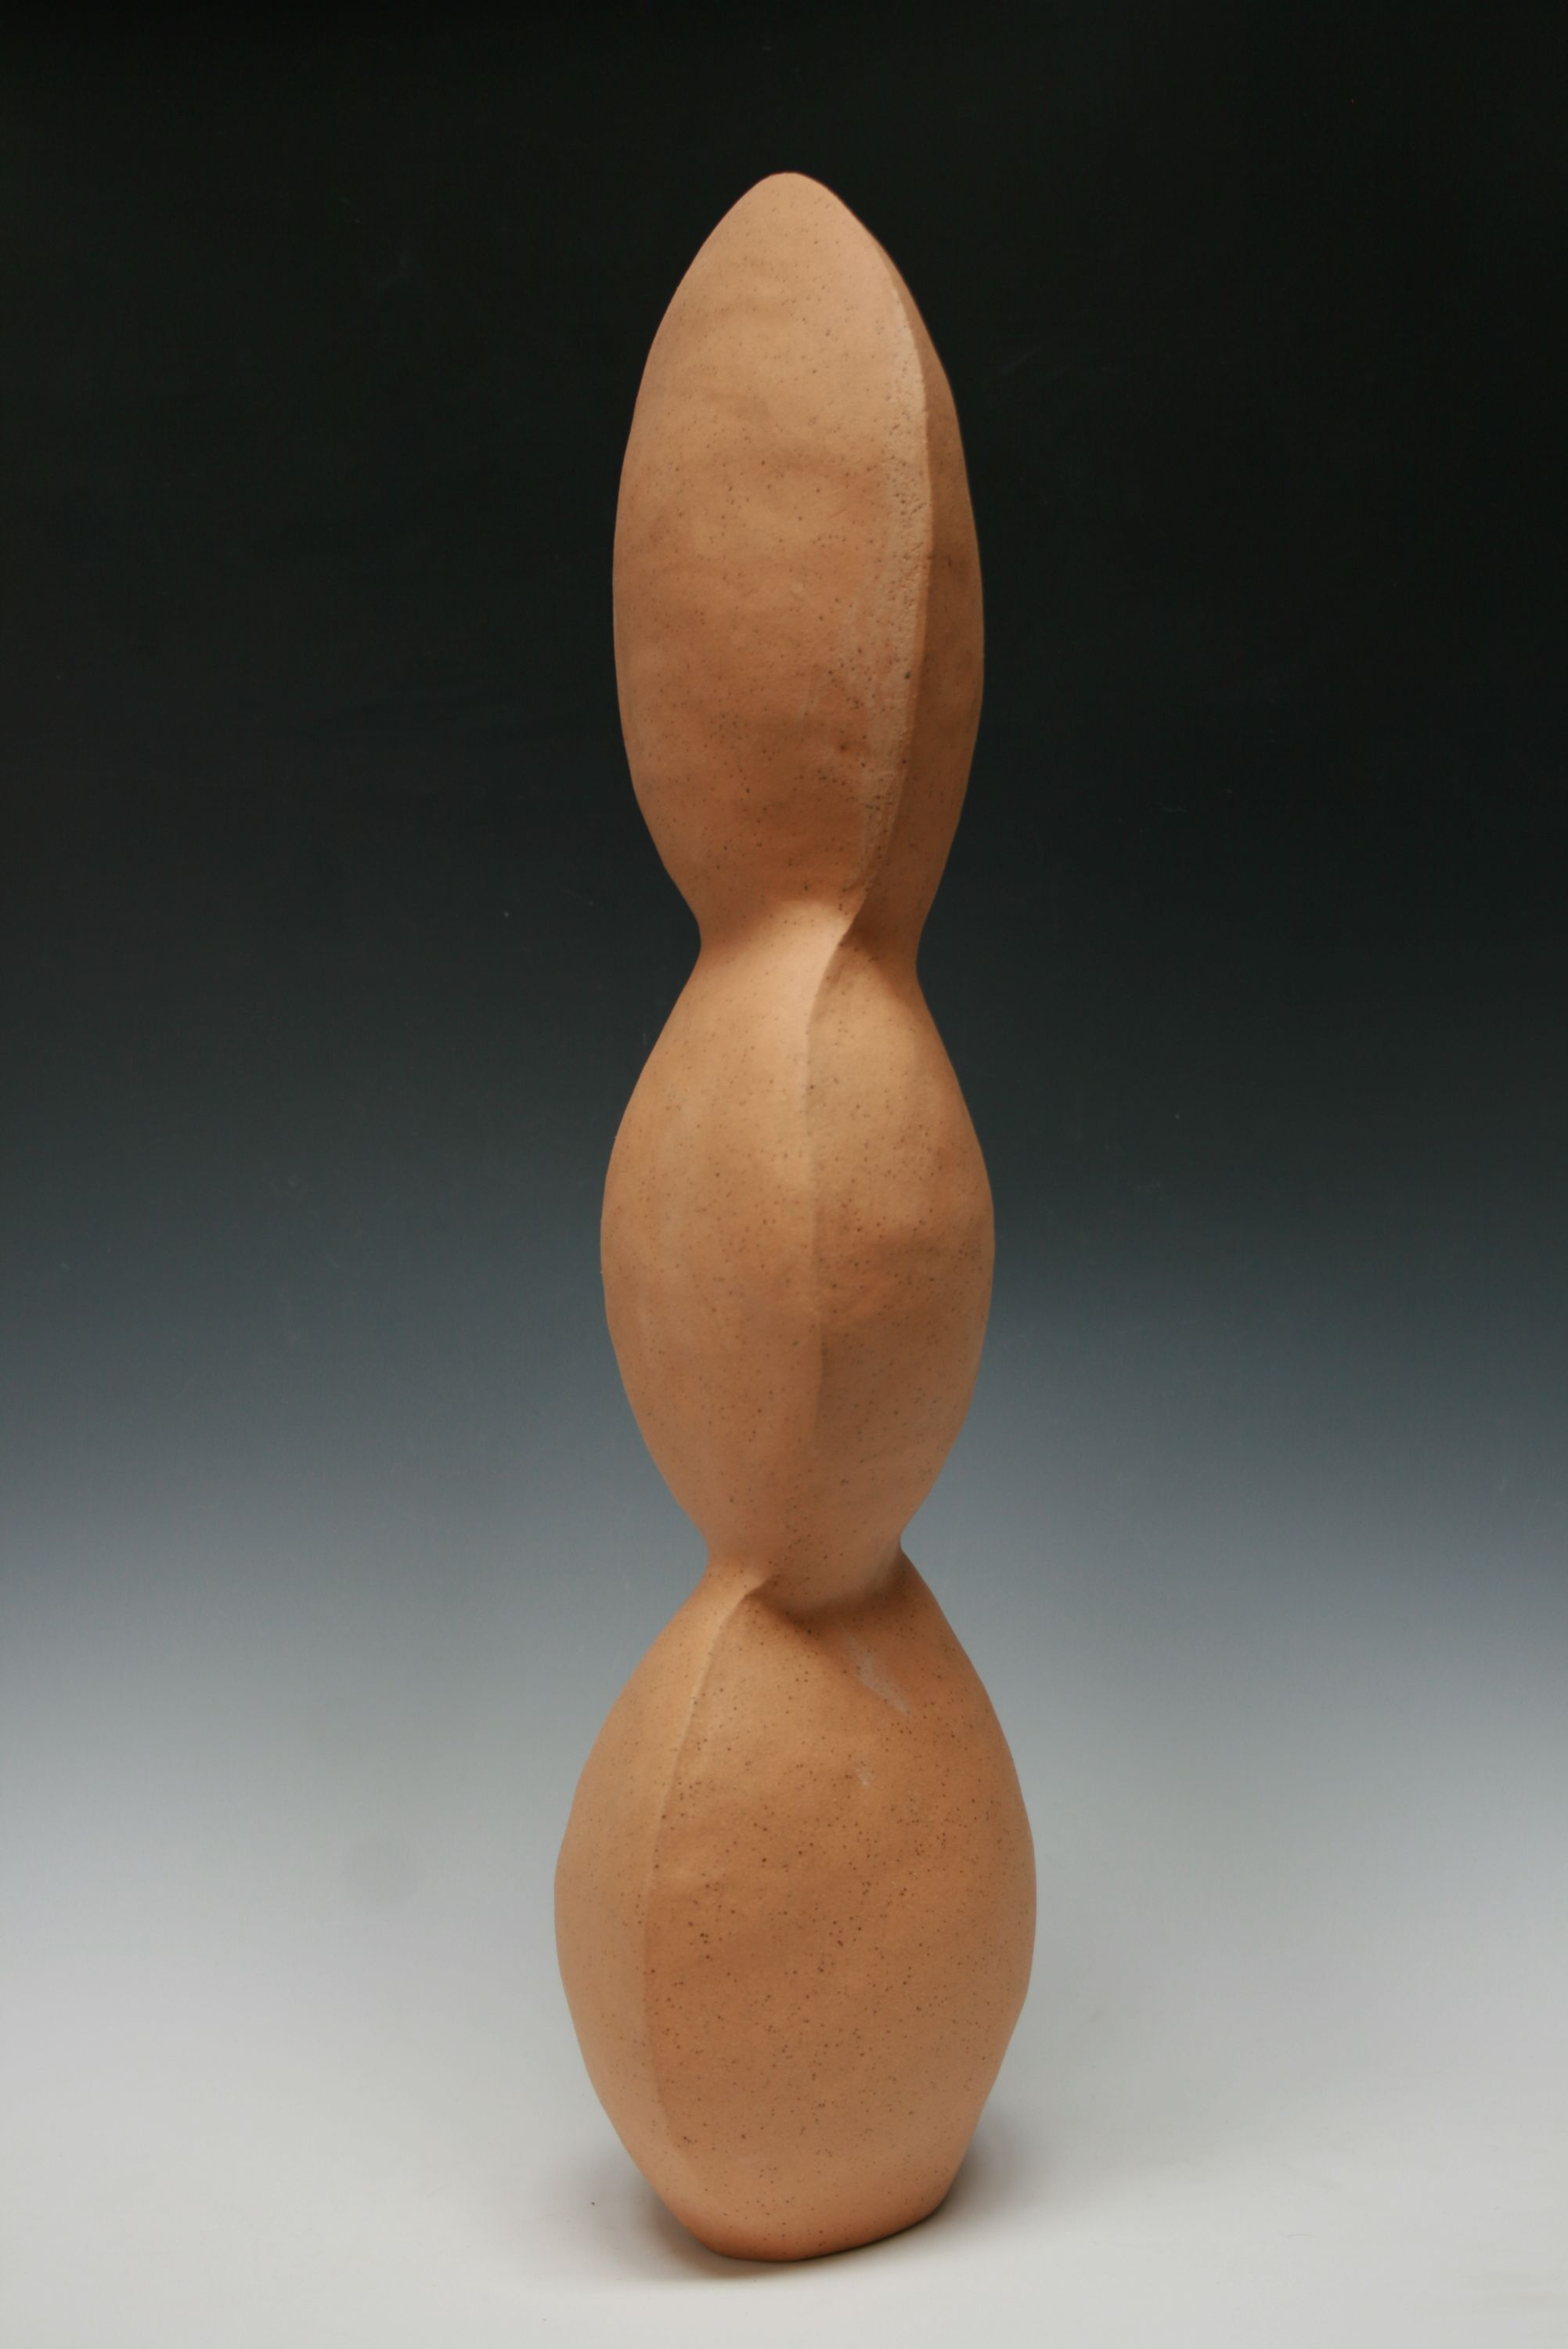 Segmented Form #1 by Peter St. Lawrence, CULT | Aimee Friberg Exhibitions